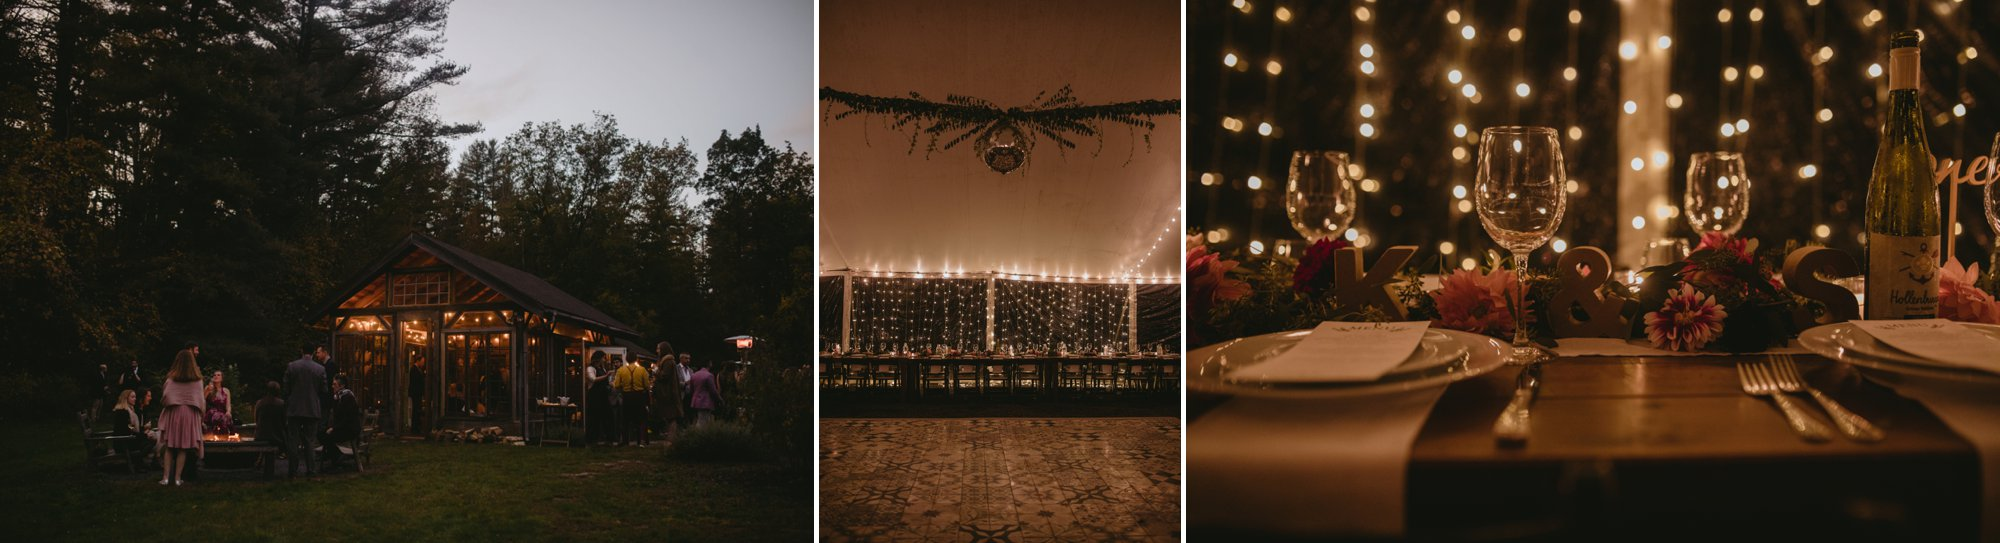 October Jewish lesbian wedding at Foxfire Mountain House in Upstate New York. Nighttime reception.